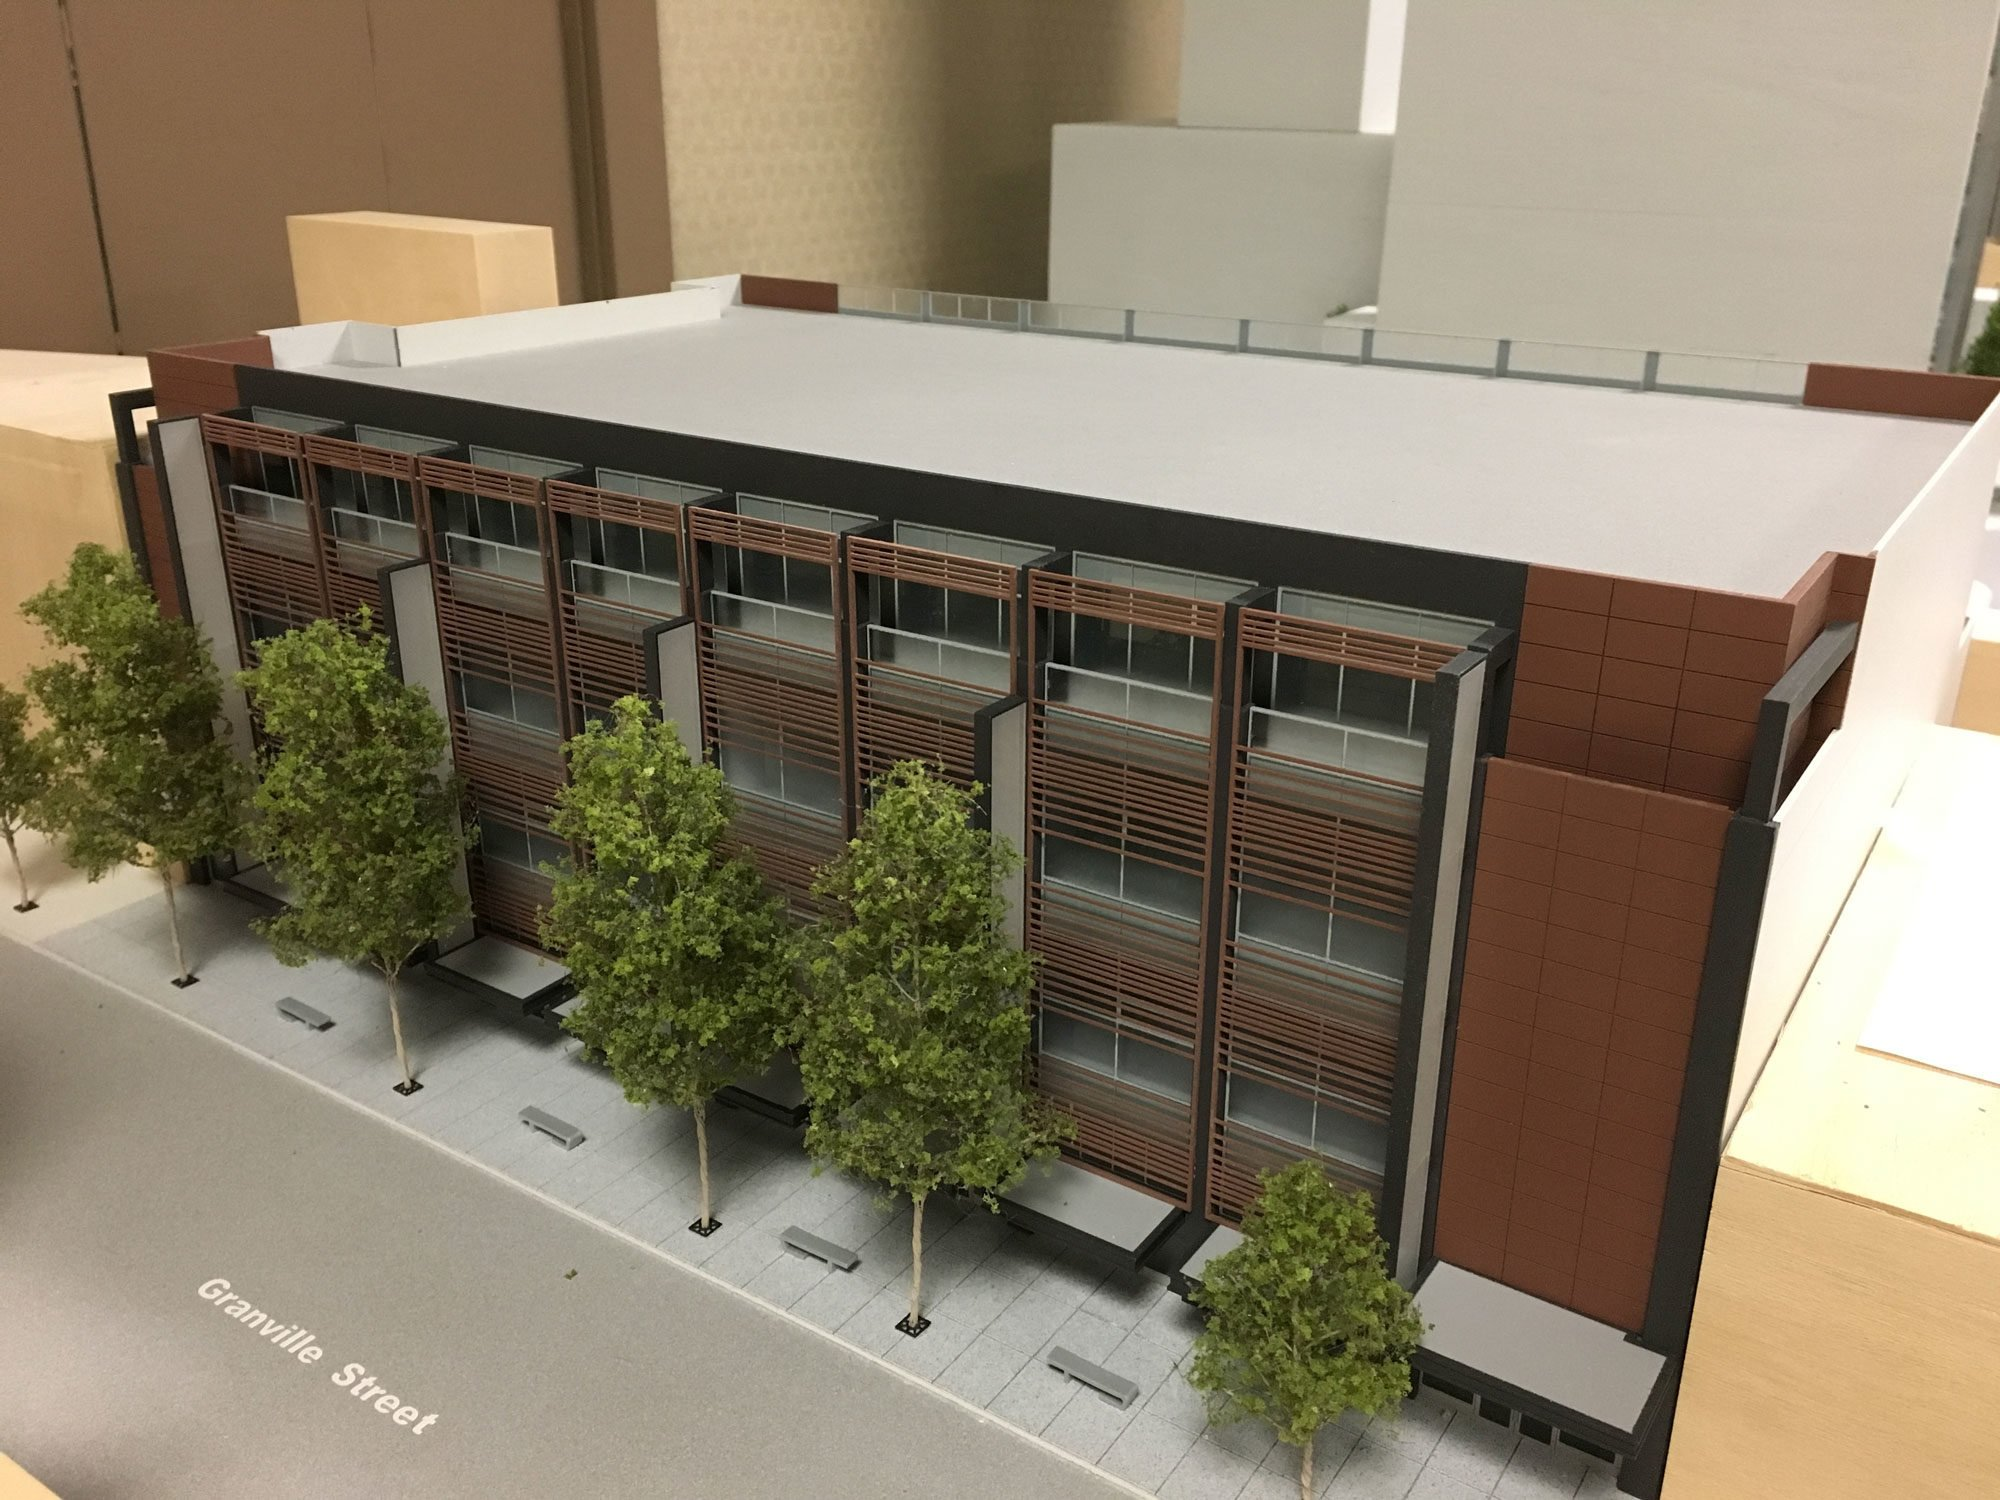 New building with large retail spaces proposed for Granville Street